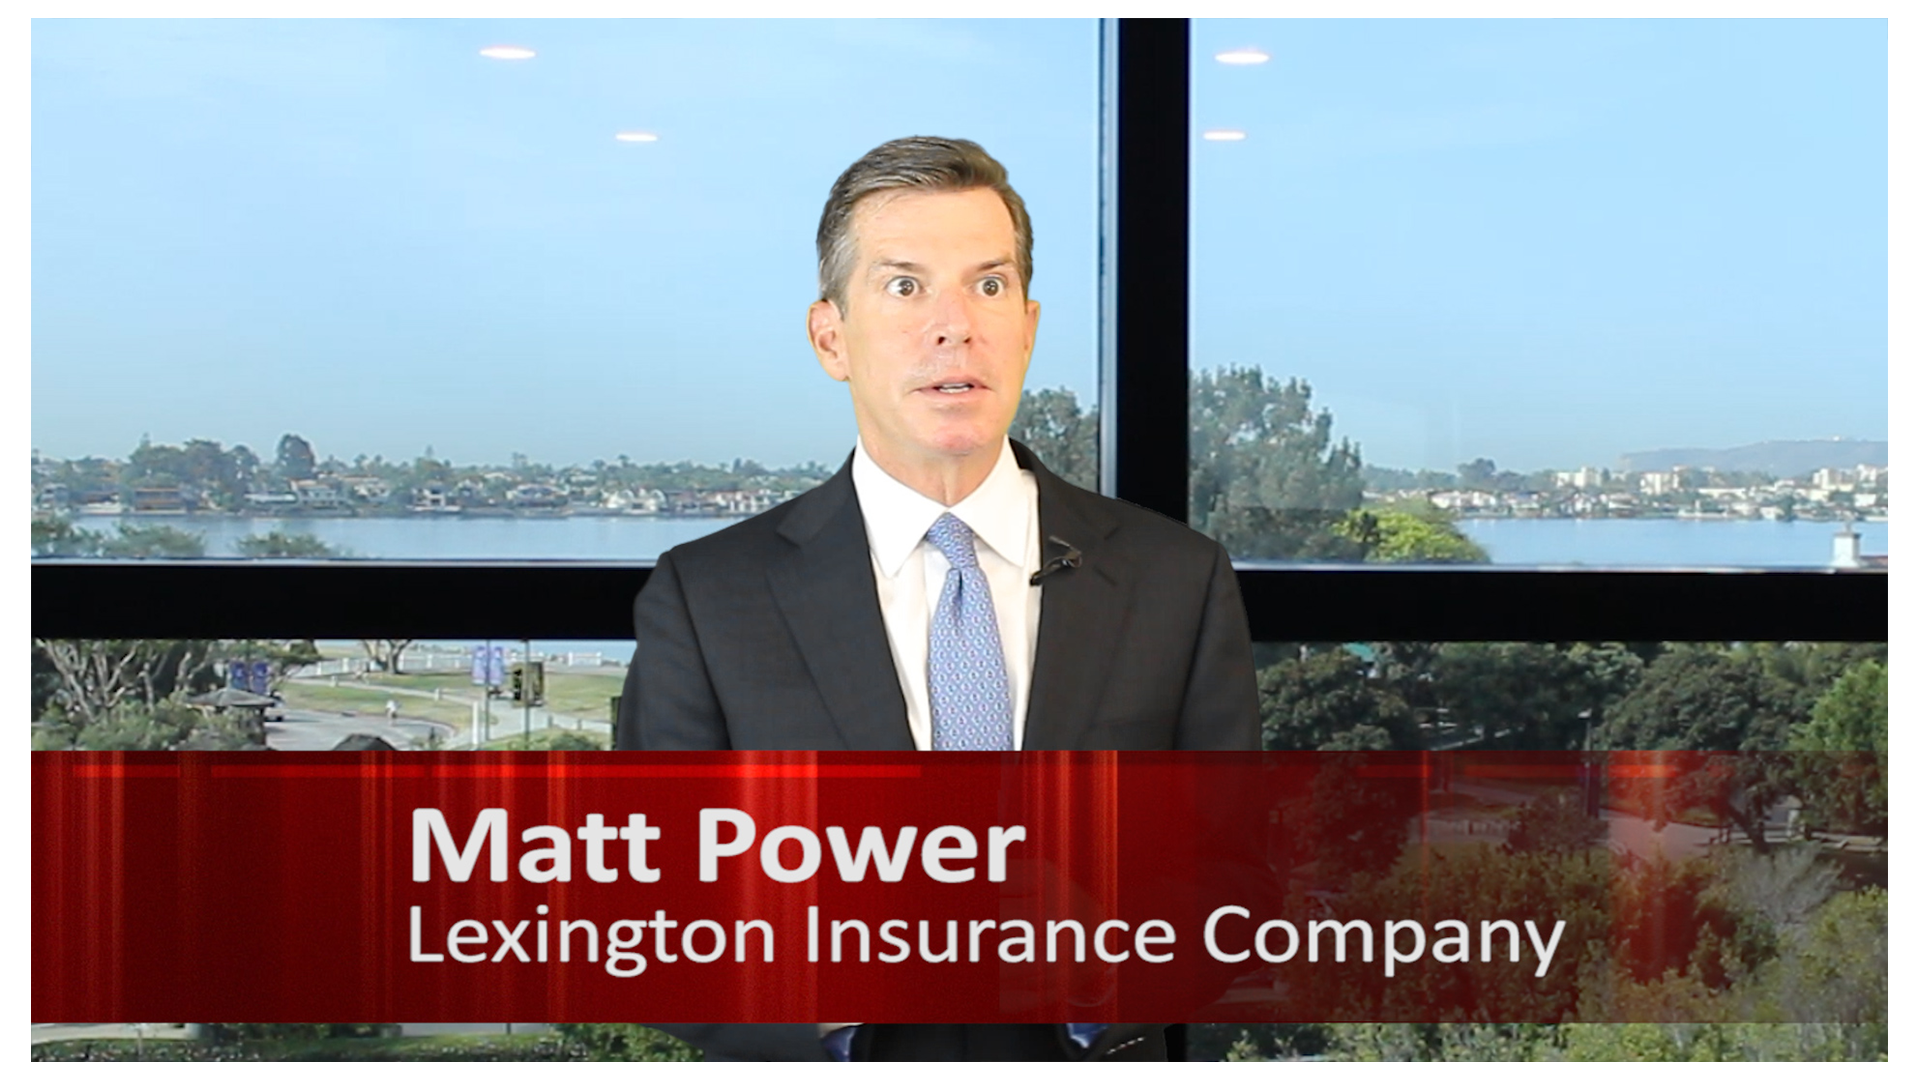 Matt Power - Lexington Insurance